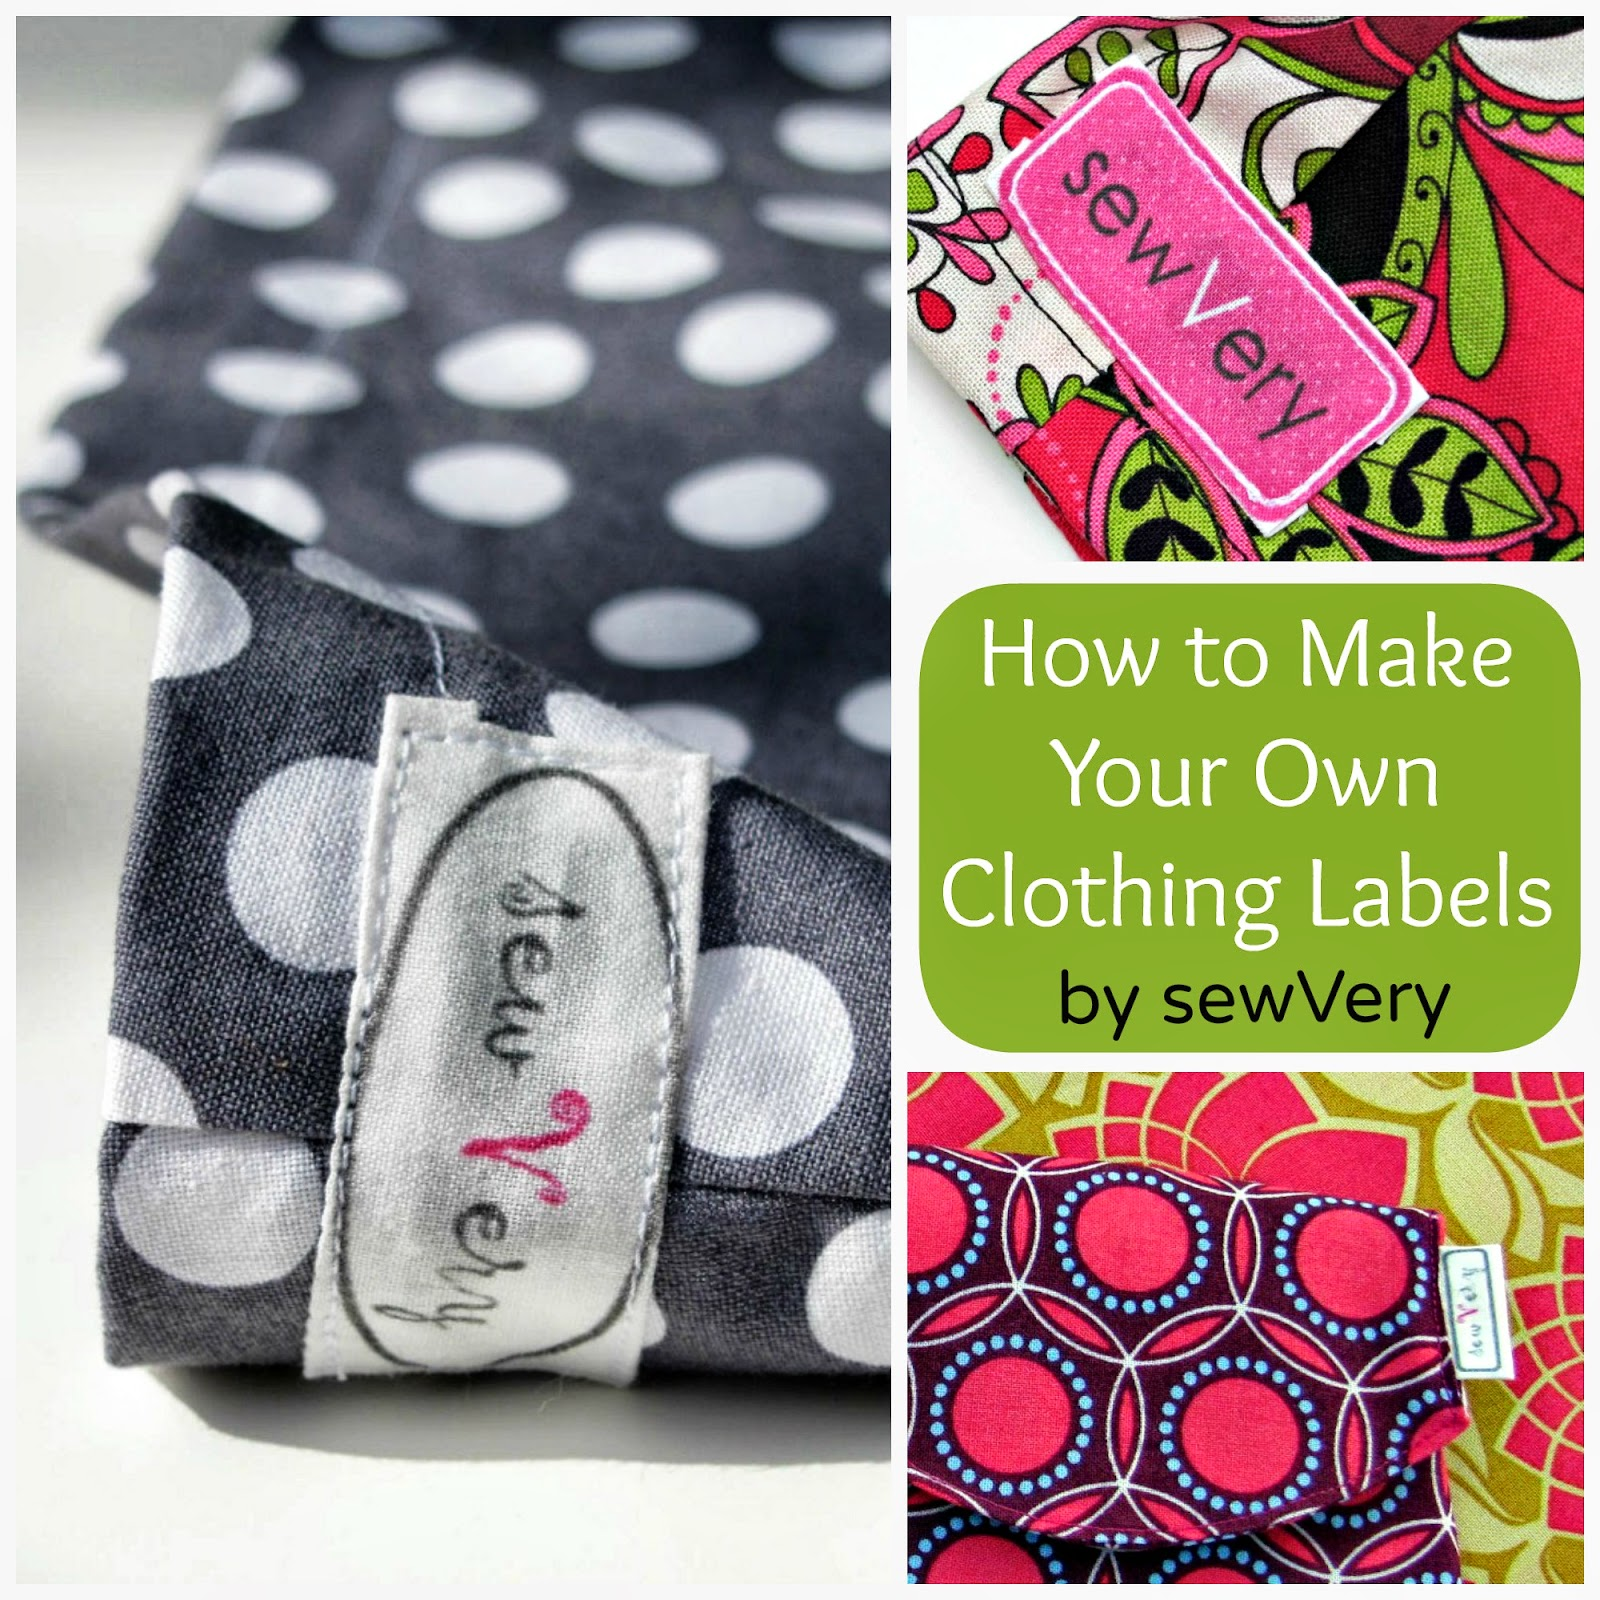 sewvery how to make your own clothing labels With how to make your own clothing labels